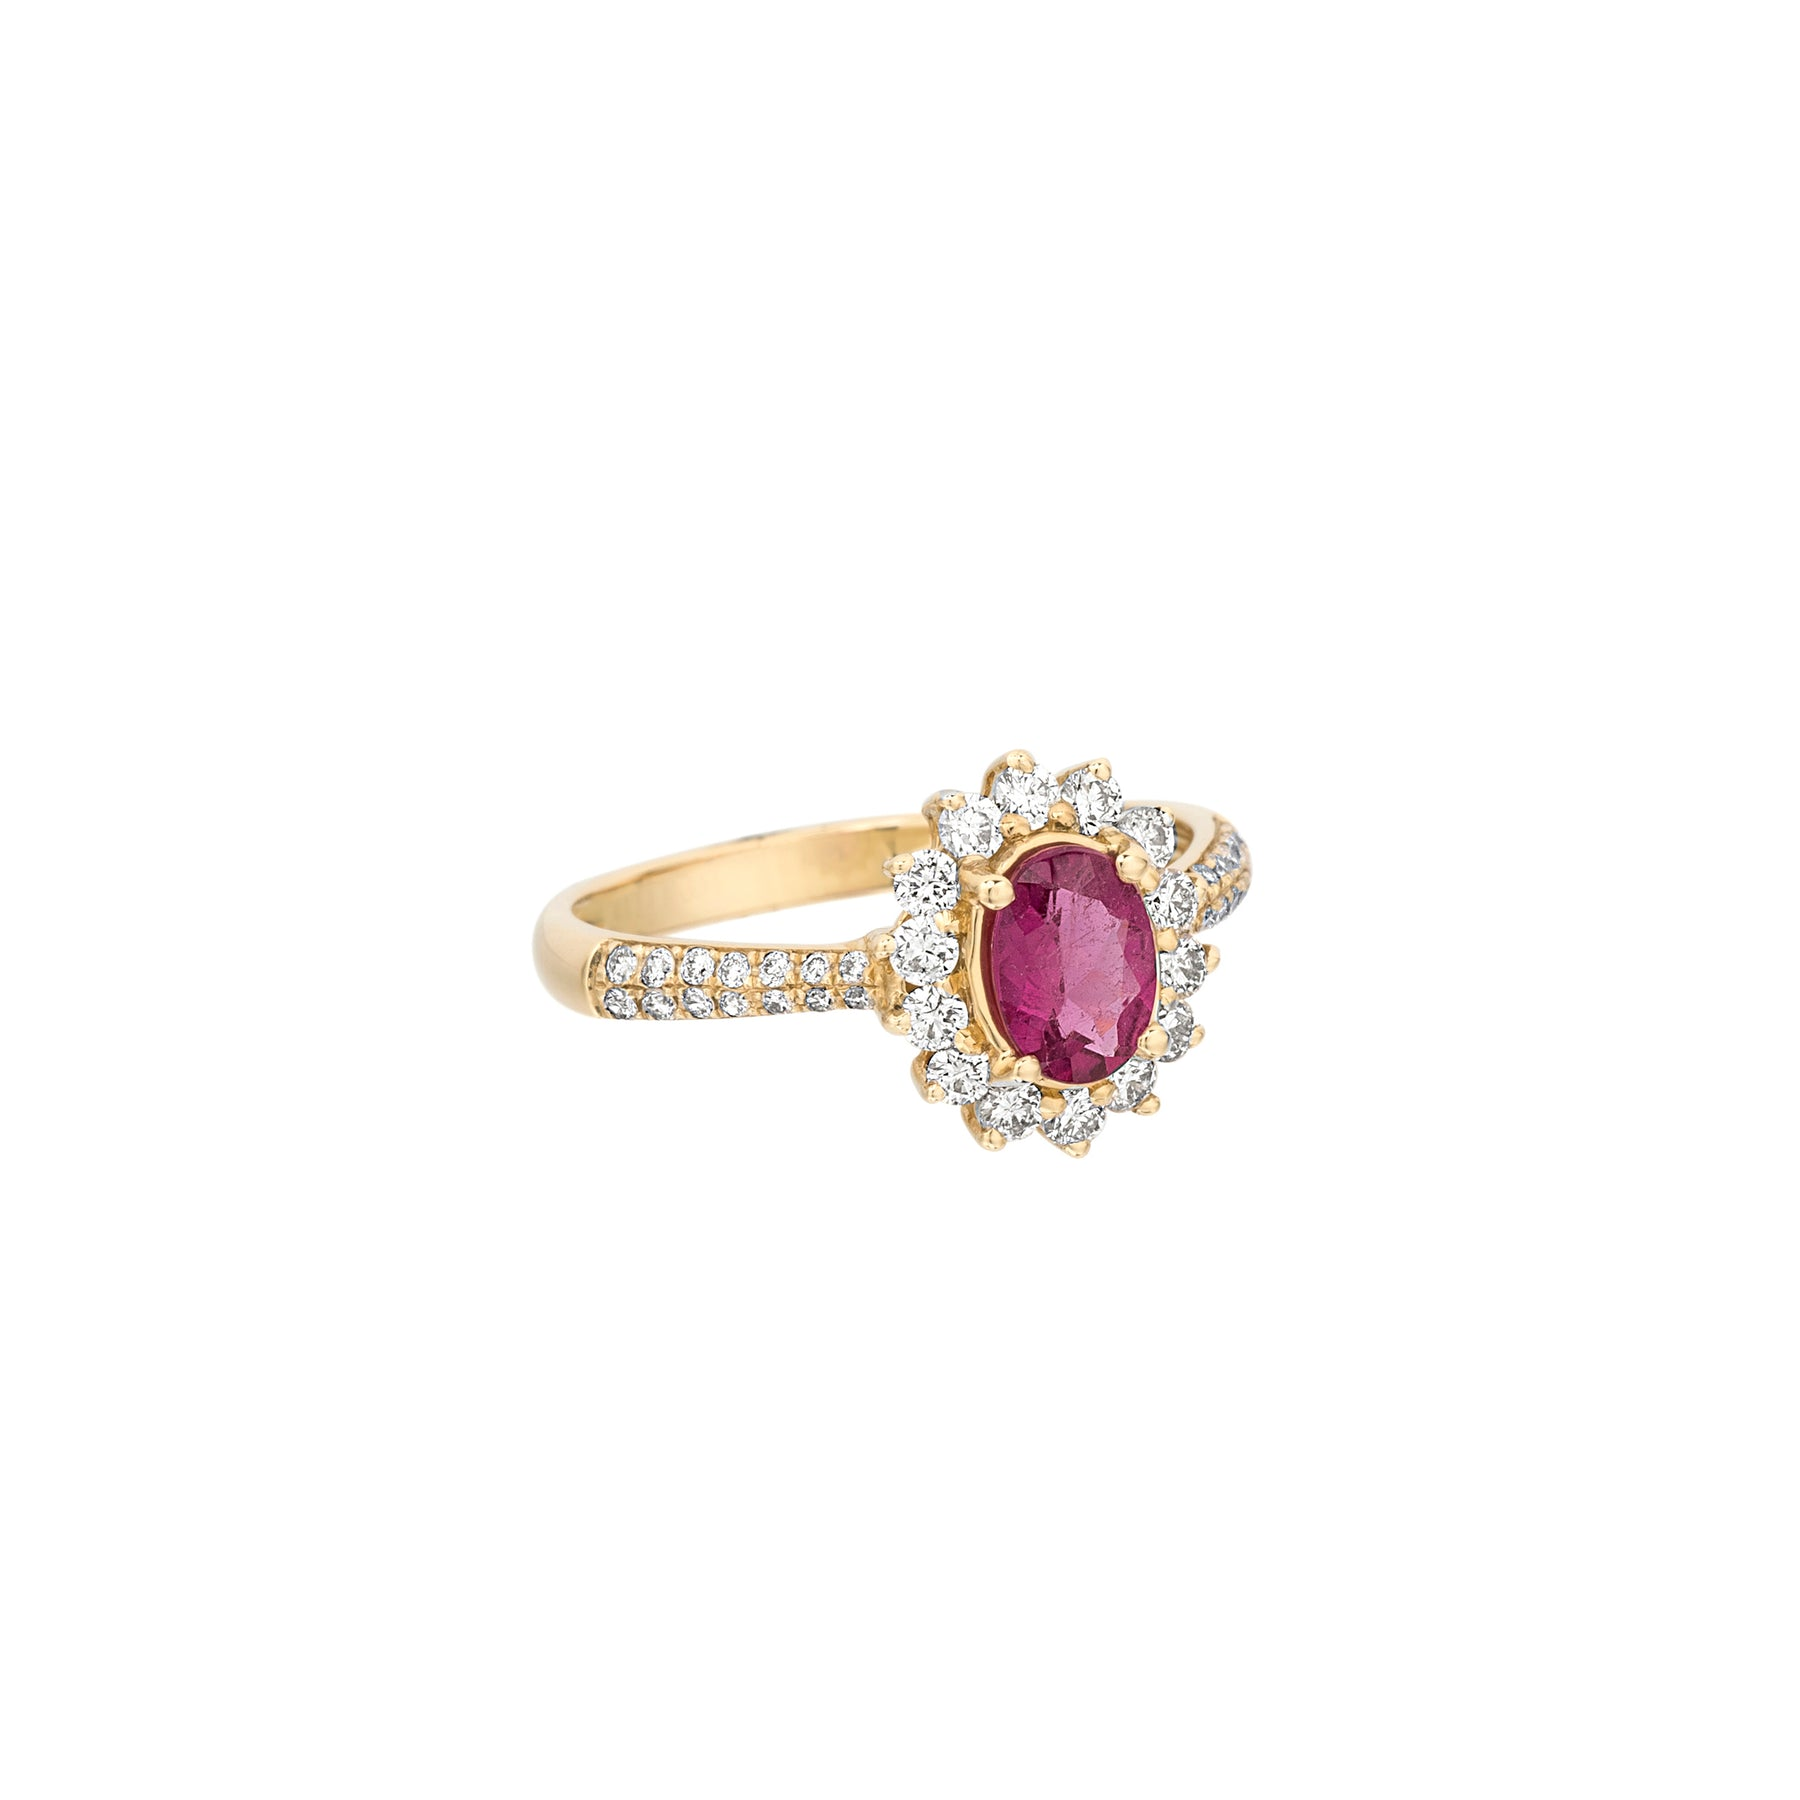 Princess Pink Tourmaline Diamond Ring